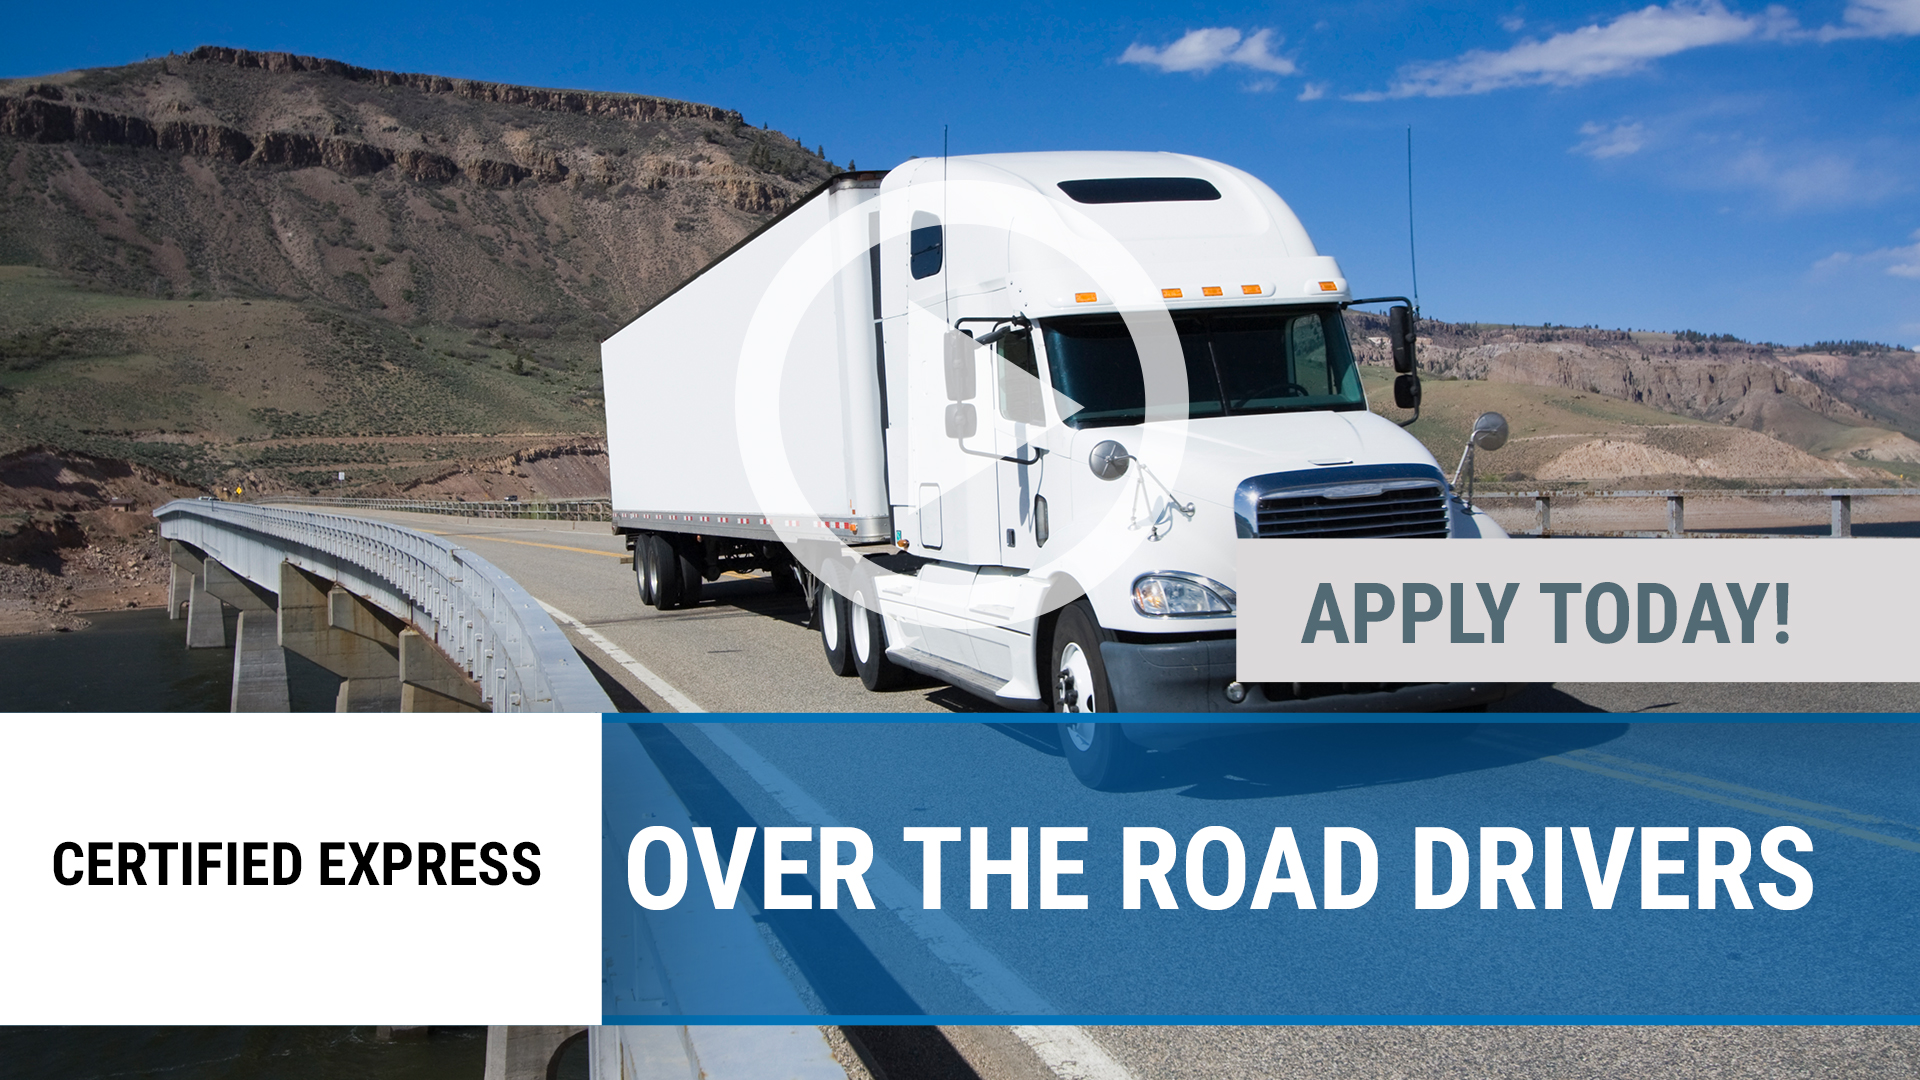 Watch our careers video for available job opening Over the Road Drivers in Joplin, MO